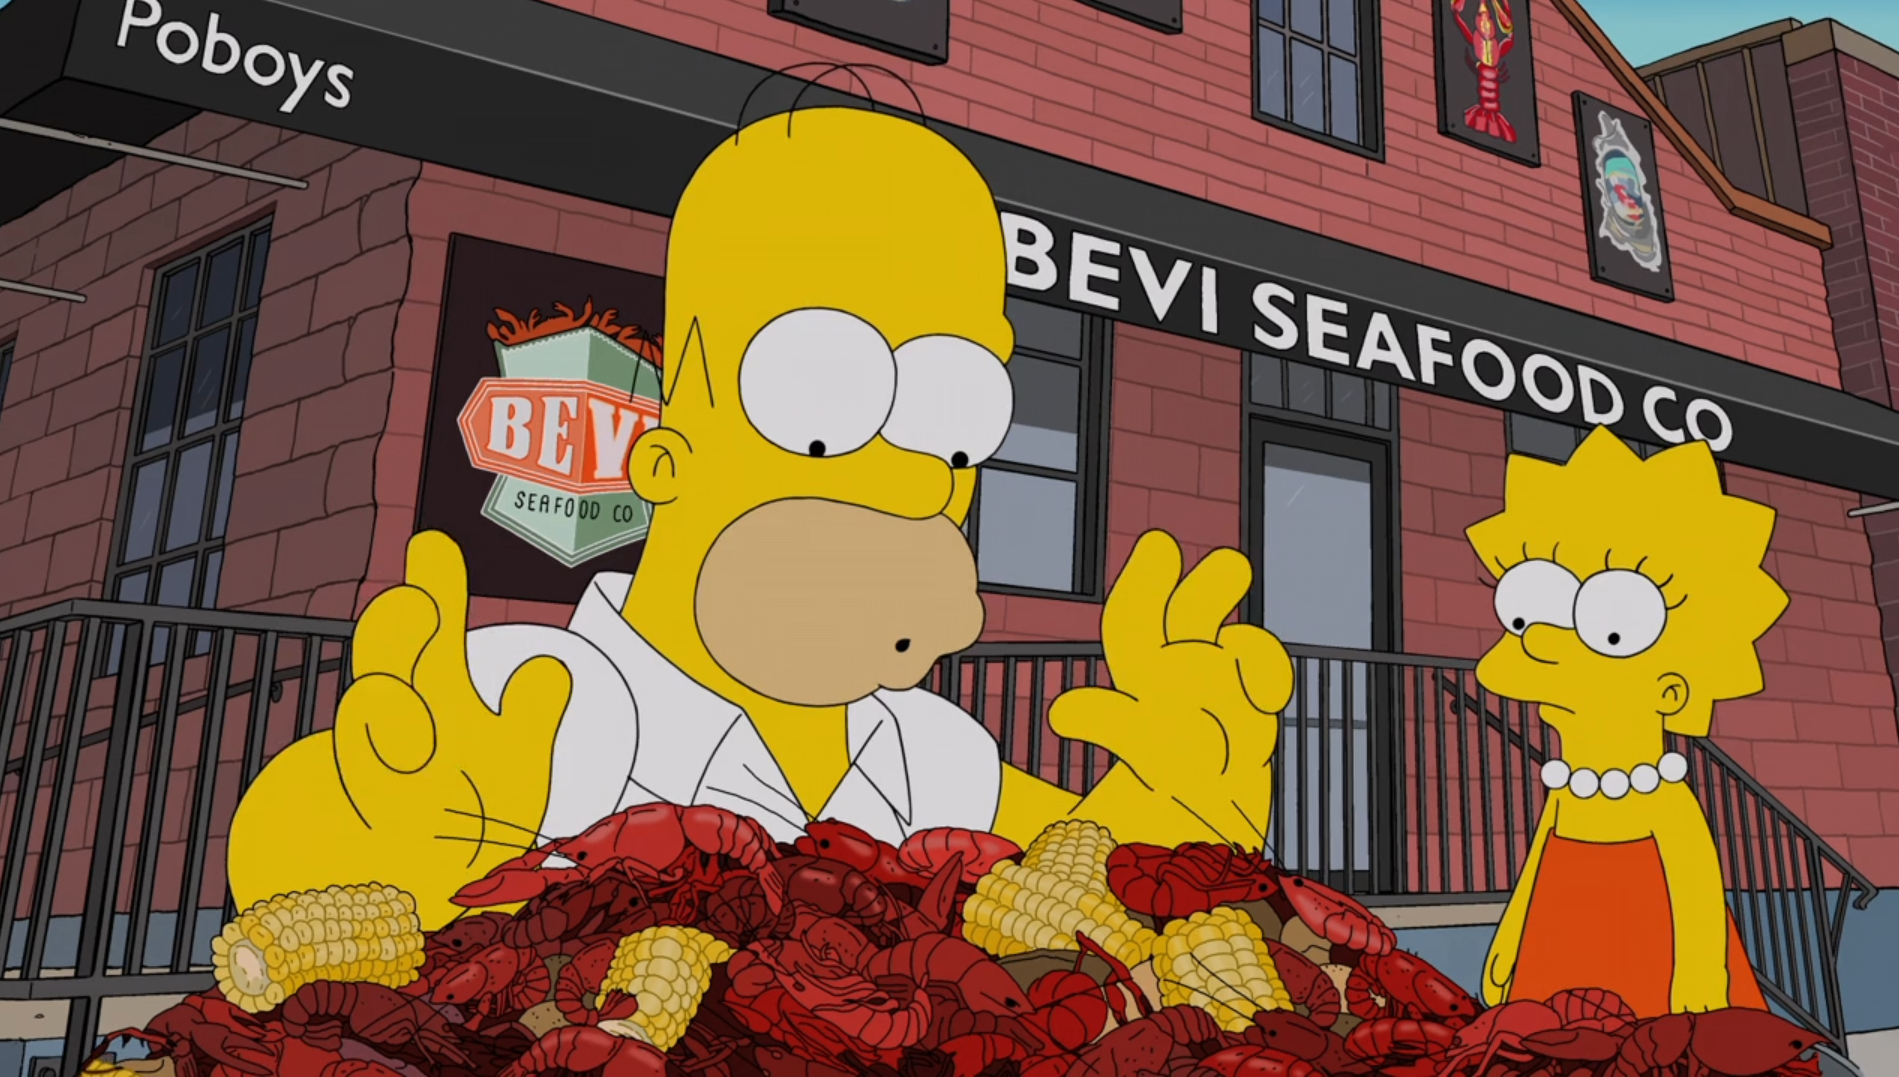 Bevi Seafood Co.png